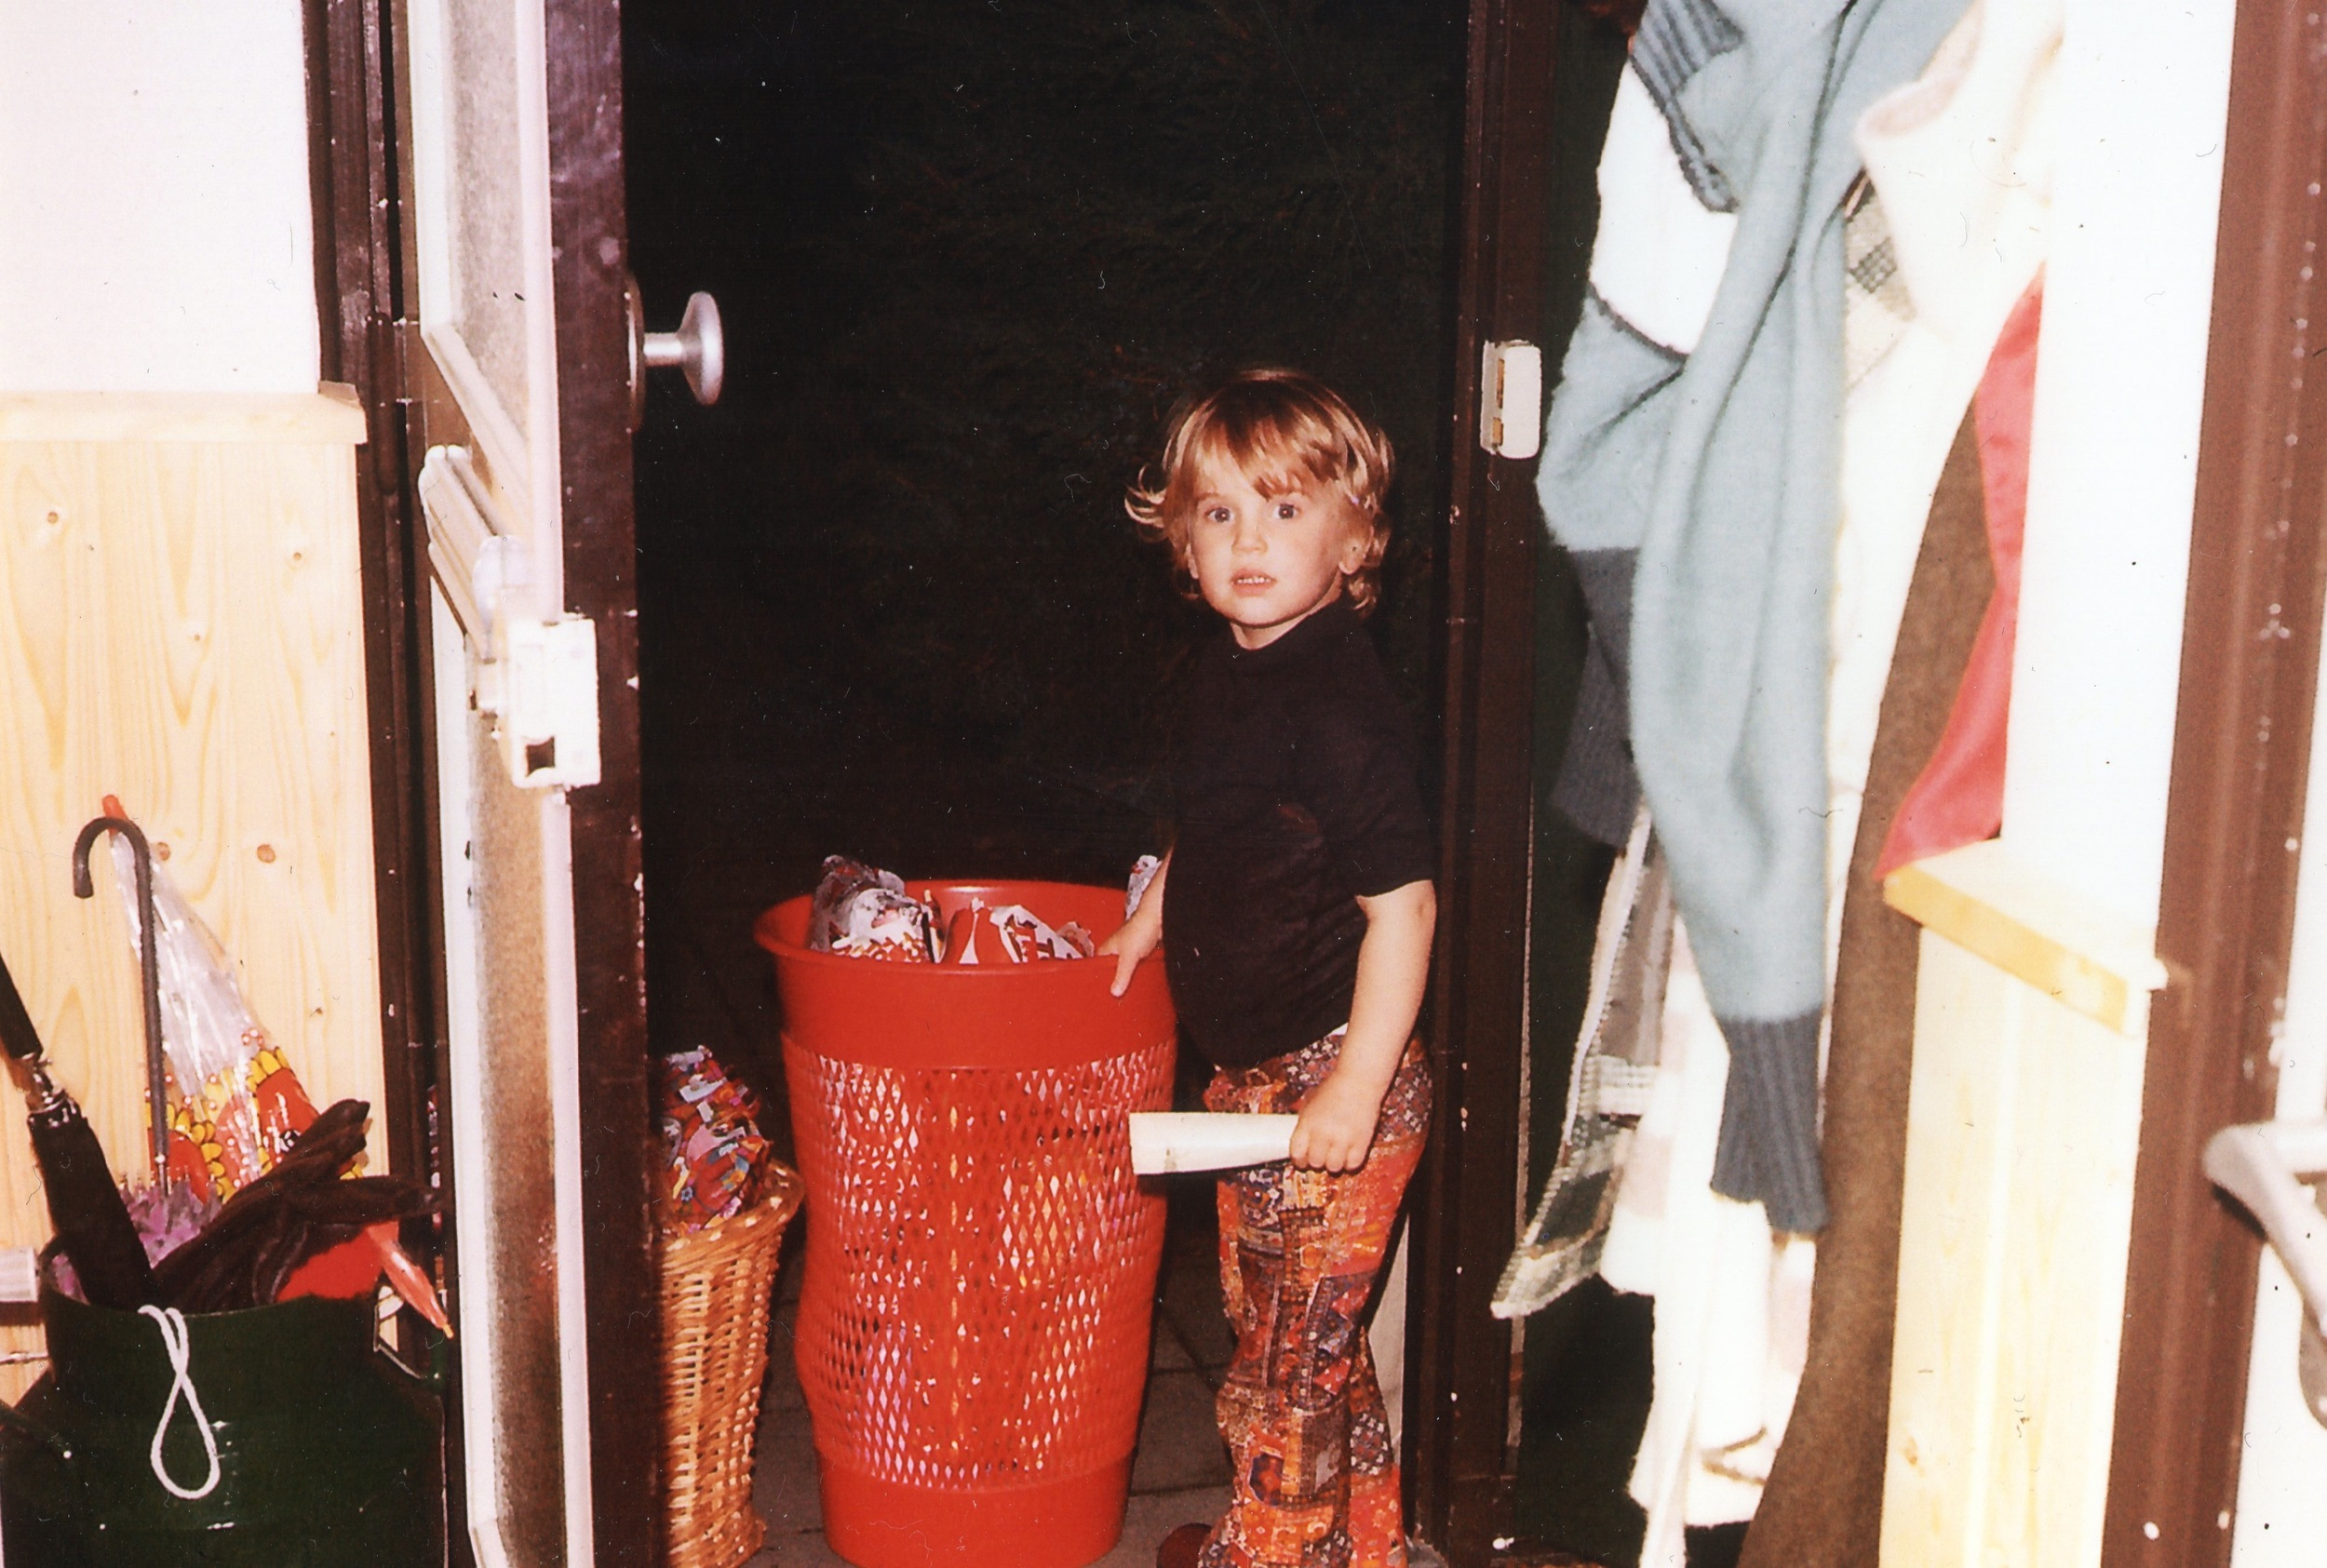 Me dec 5th, 1976. Excited what Sinterklaas brought to me. This year at dec 5th I will be very excited to exhibit in Miami with New York based artist Eric Ginsburg.Celebrating my international debut as an artist. Life is full of surprises.